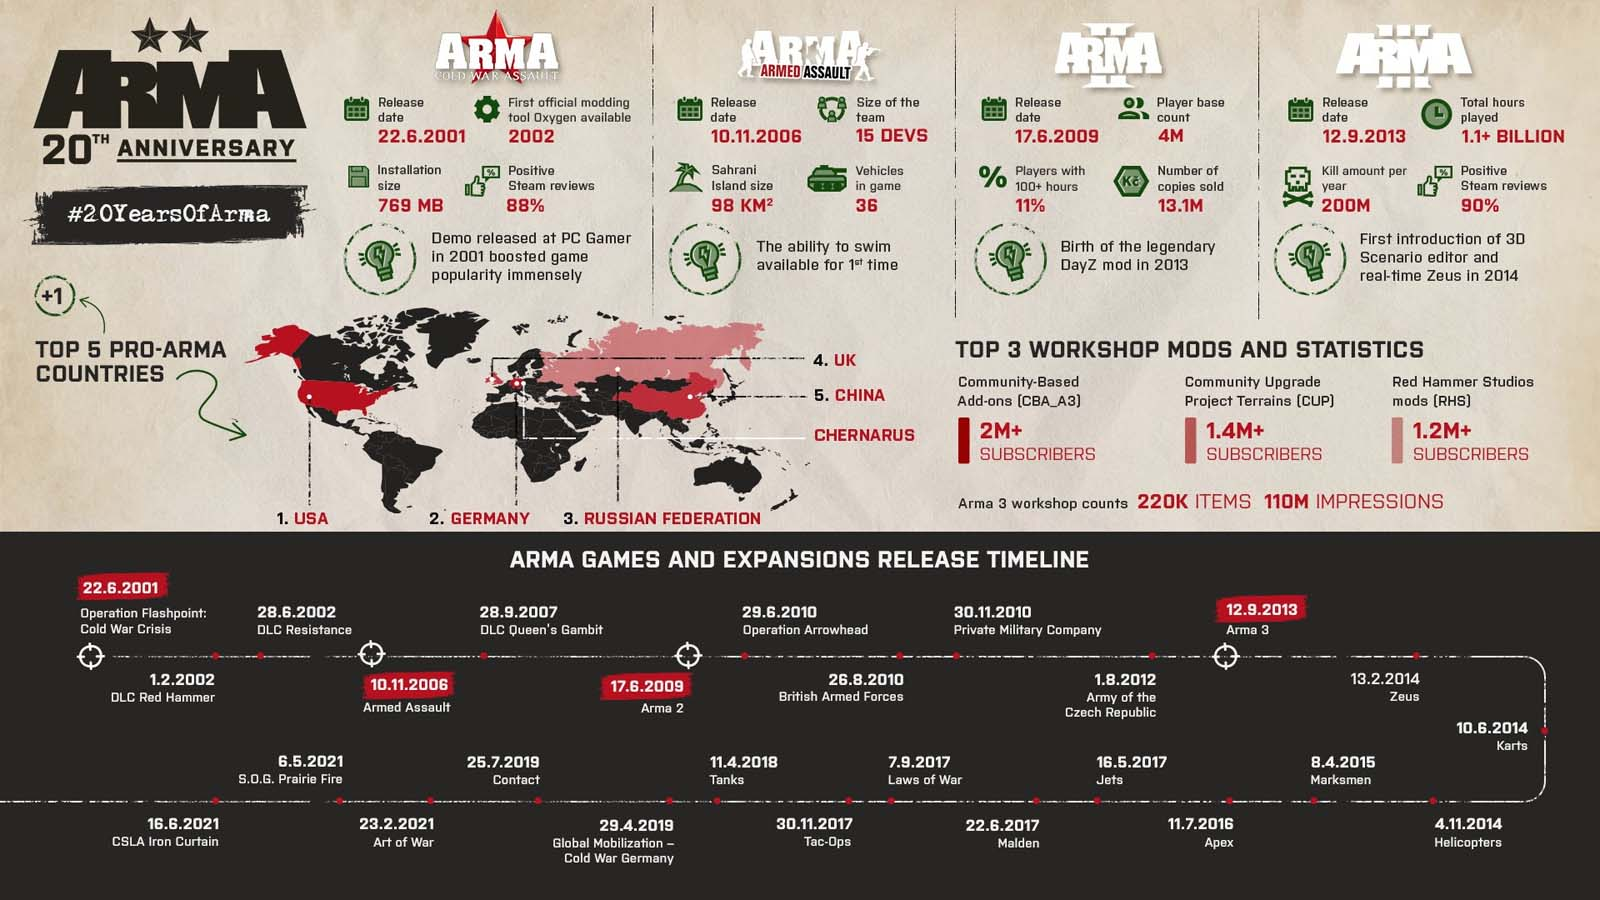 20 Days of Arma by the numbers